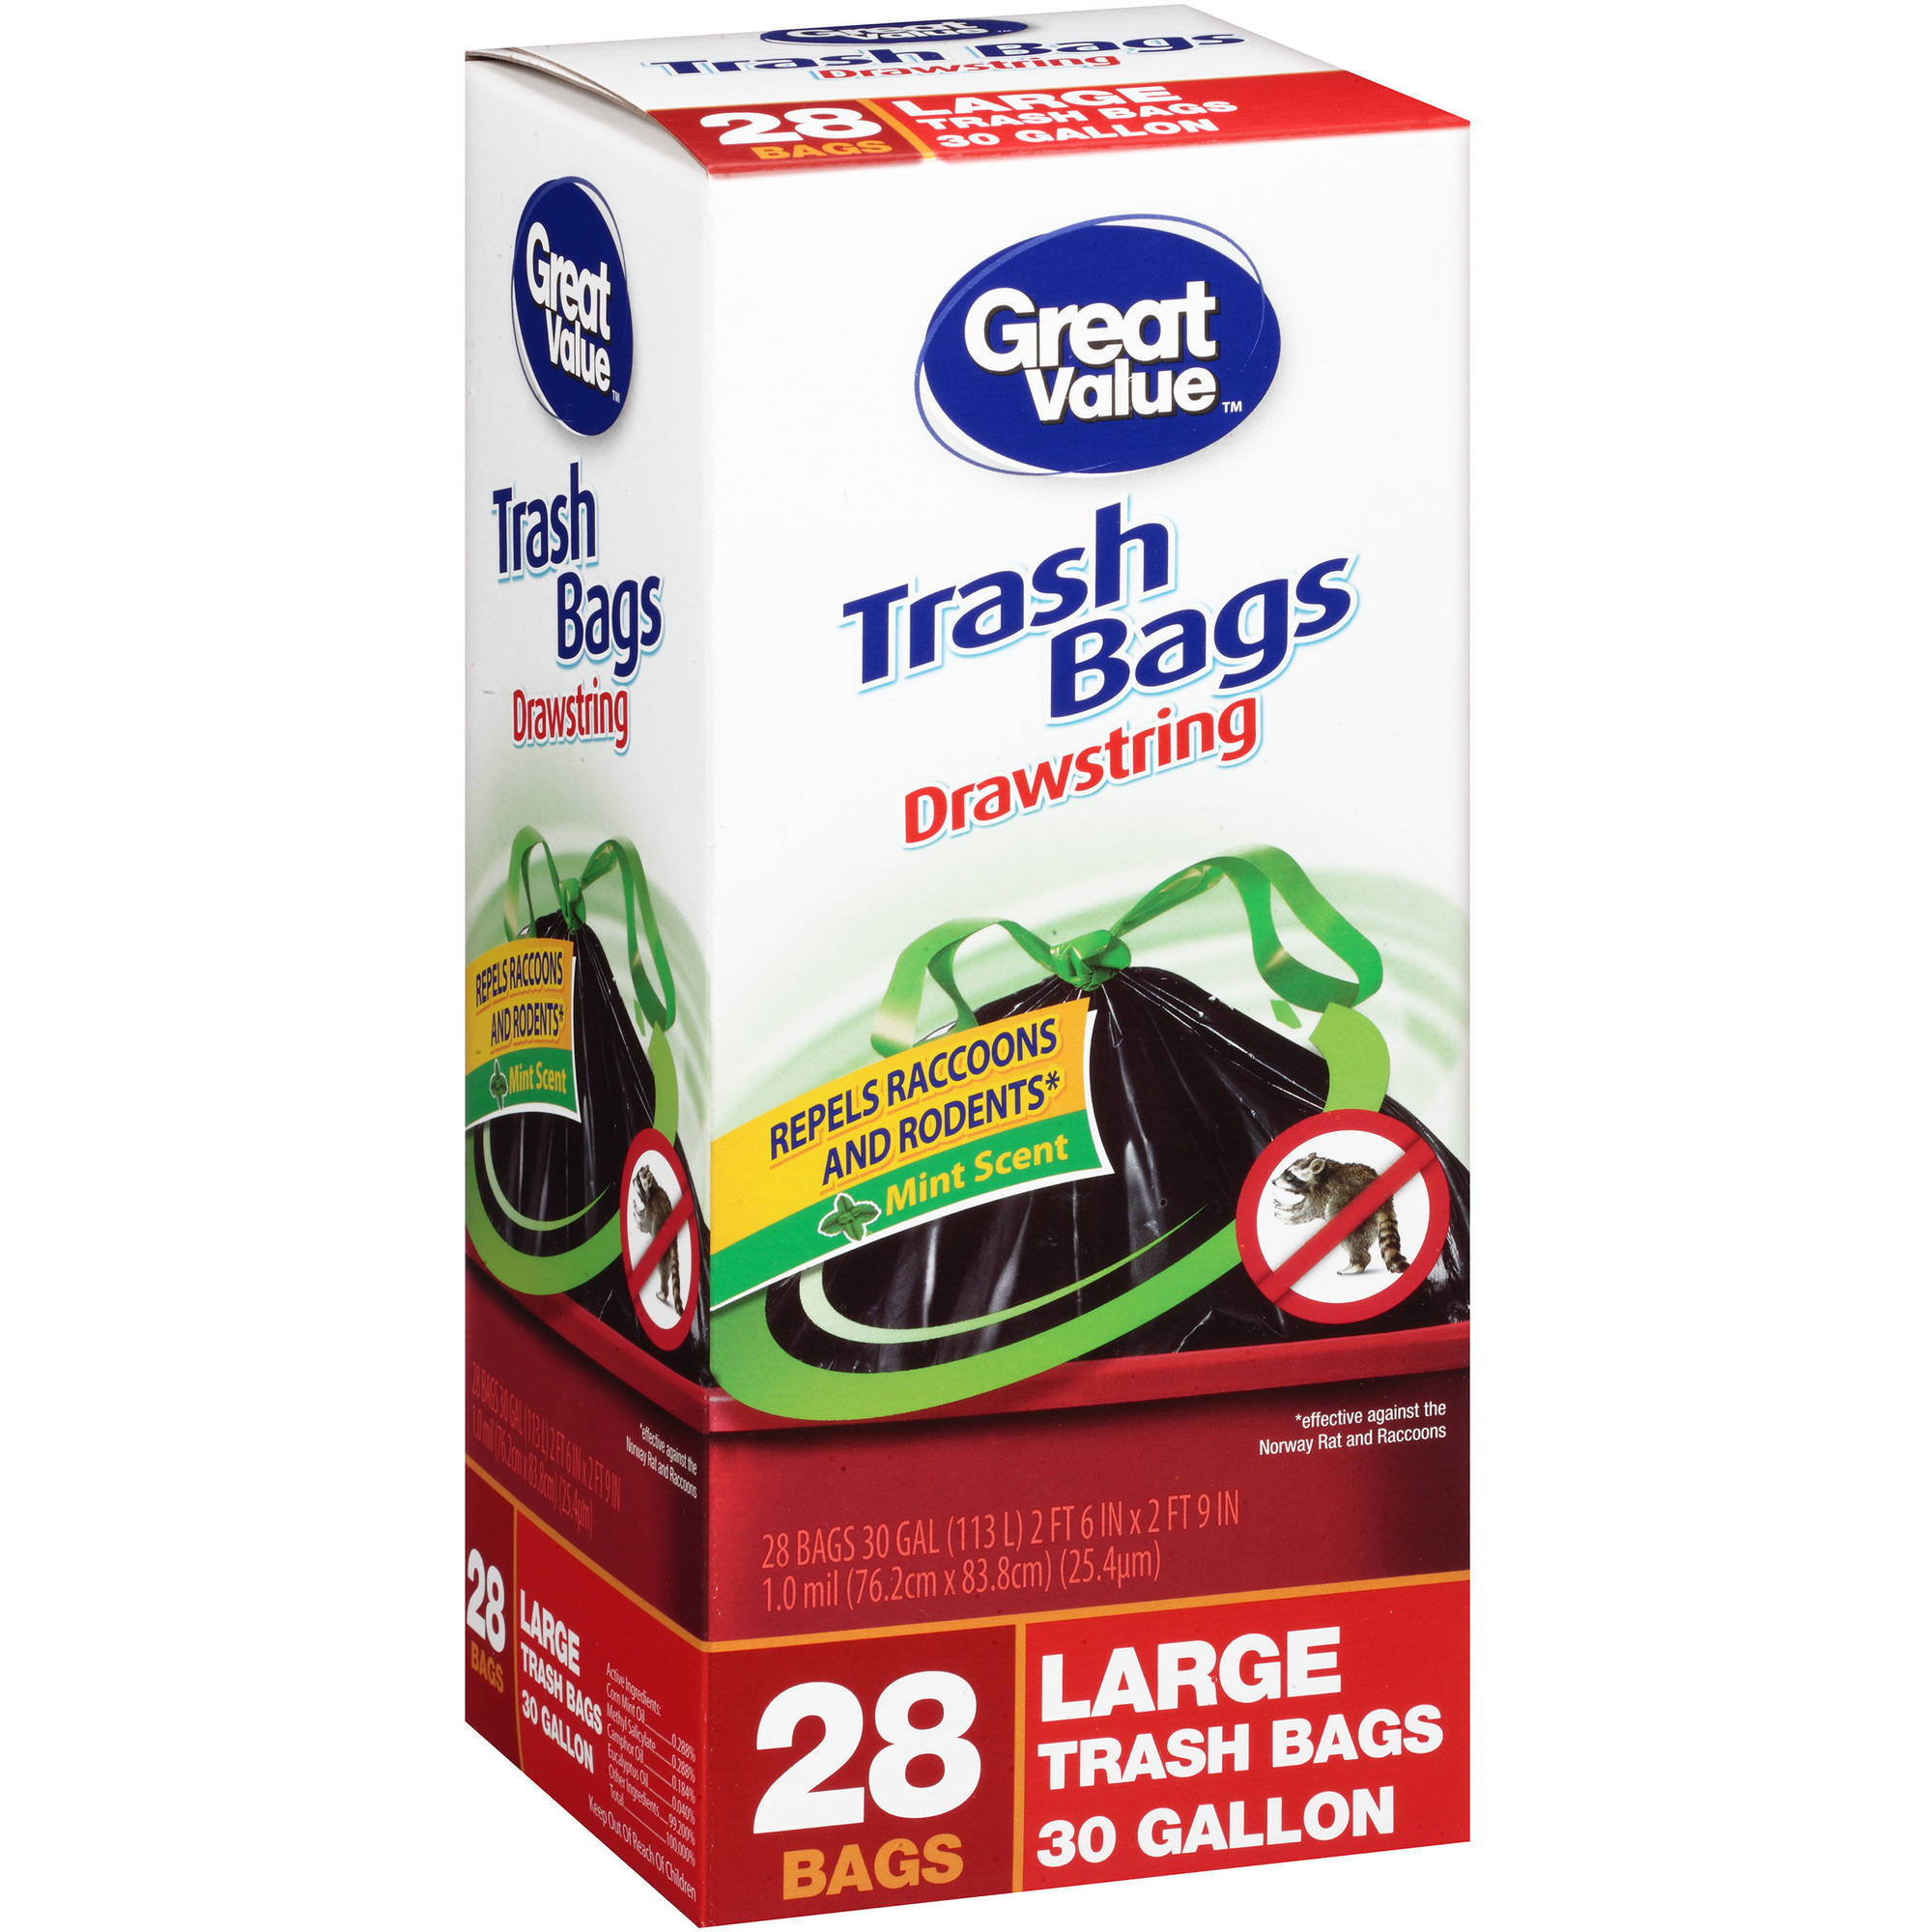 Great Value 30 Gallon Large Drawstring Trash Bags, 28 count